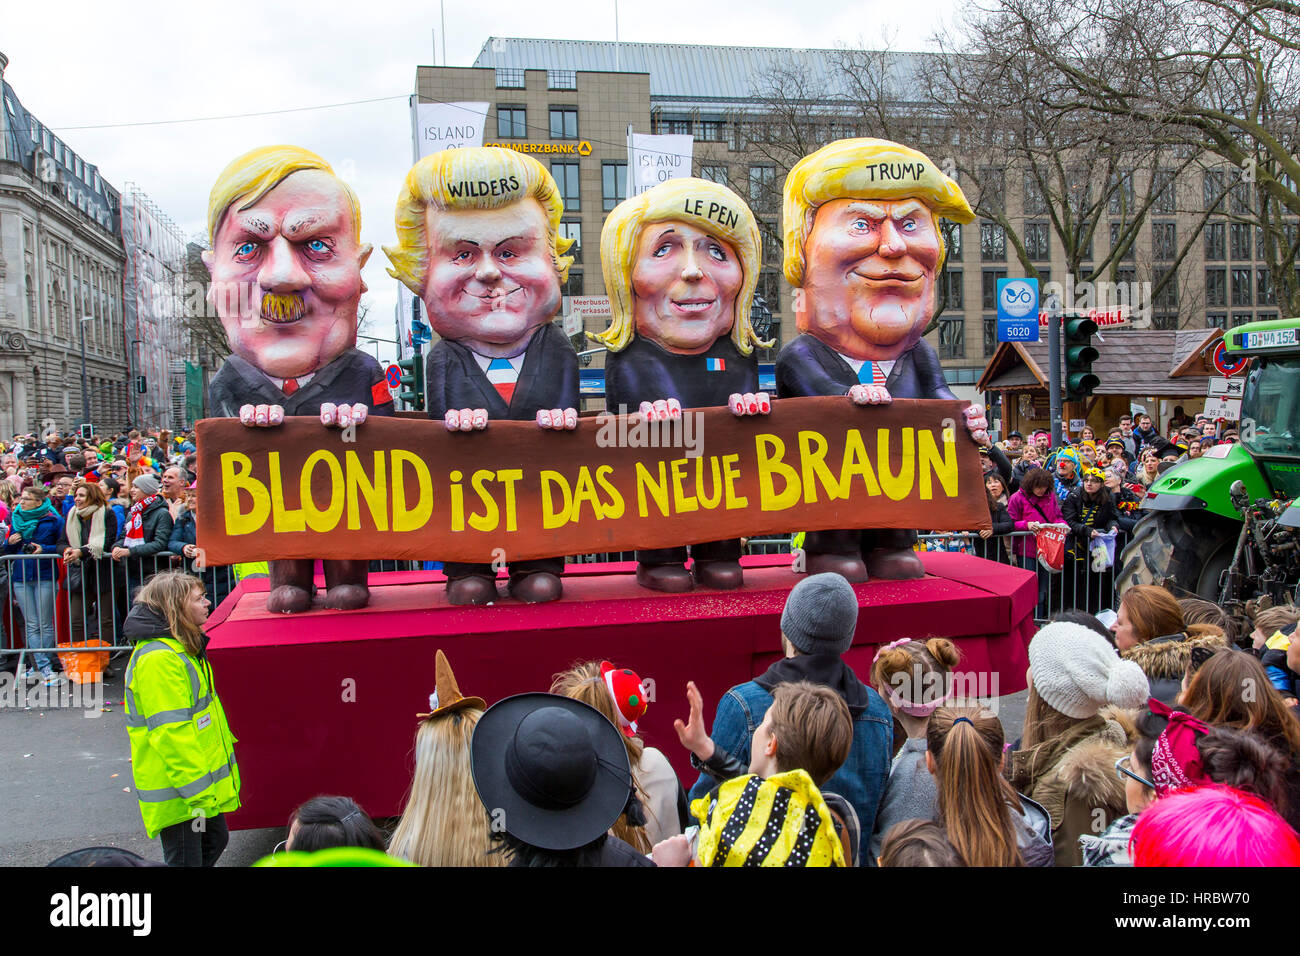 German Carnival parade in DŸsseldorf, Carnival floats designed as political caricatures, Blond is the new Brown, - Stock Image